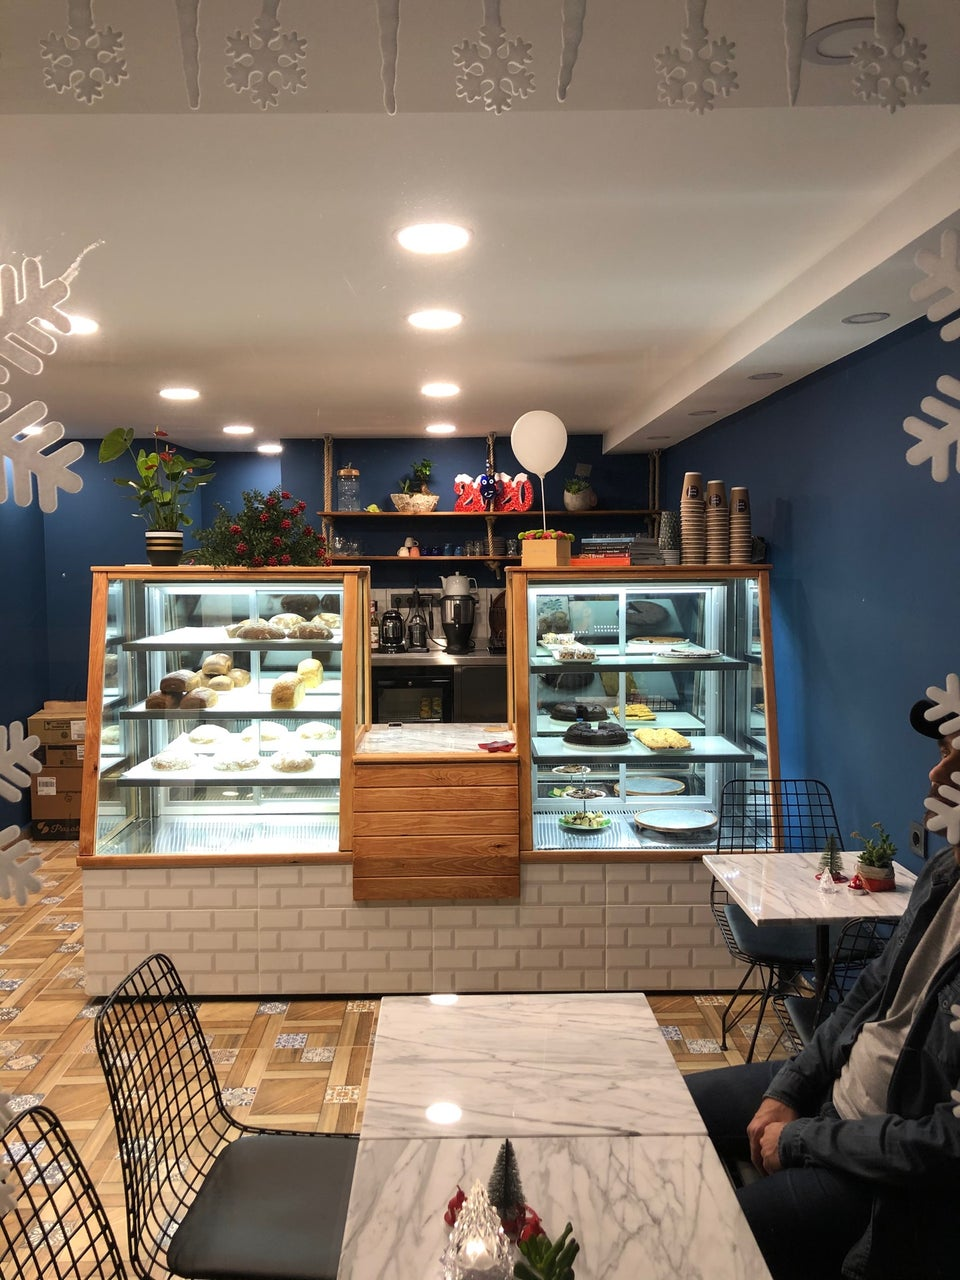 Undan Şeyler - Artisan Bakery & Coffee House